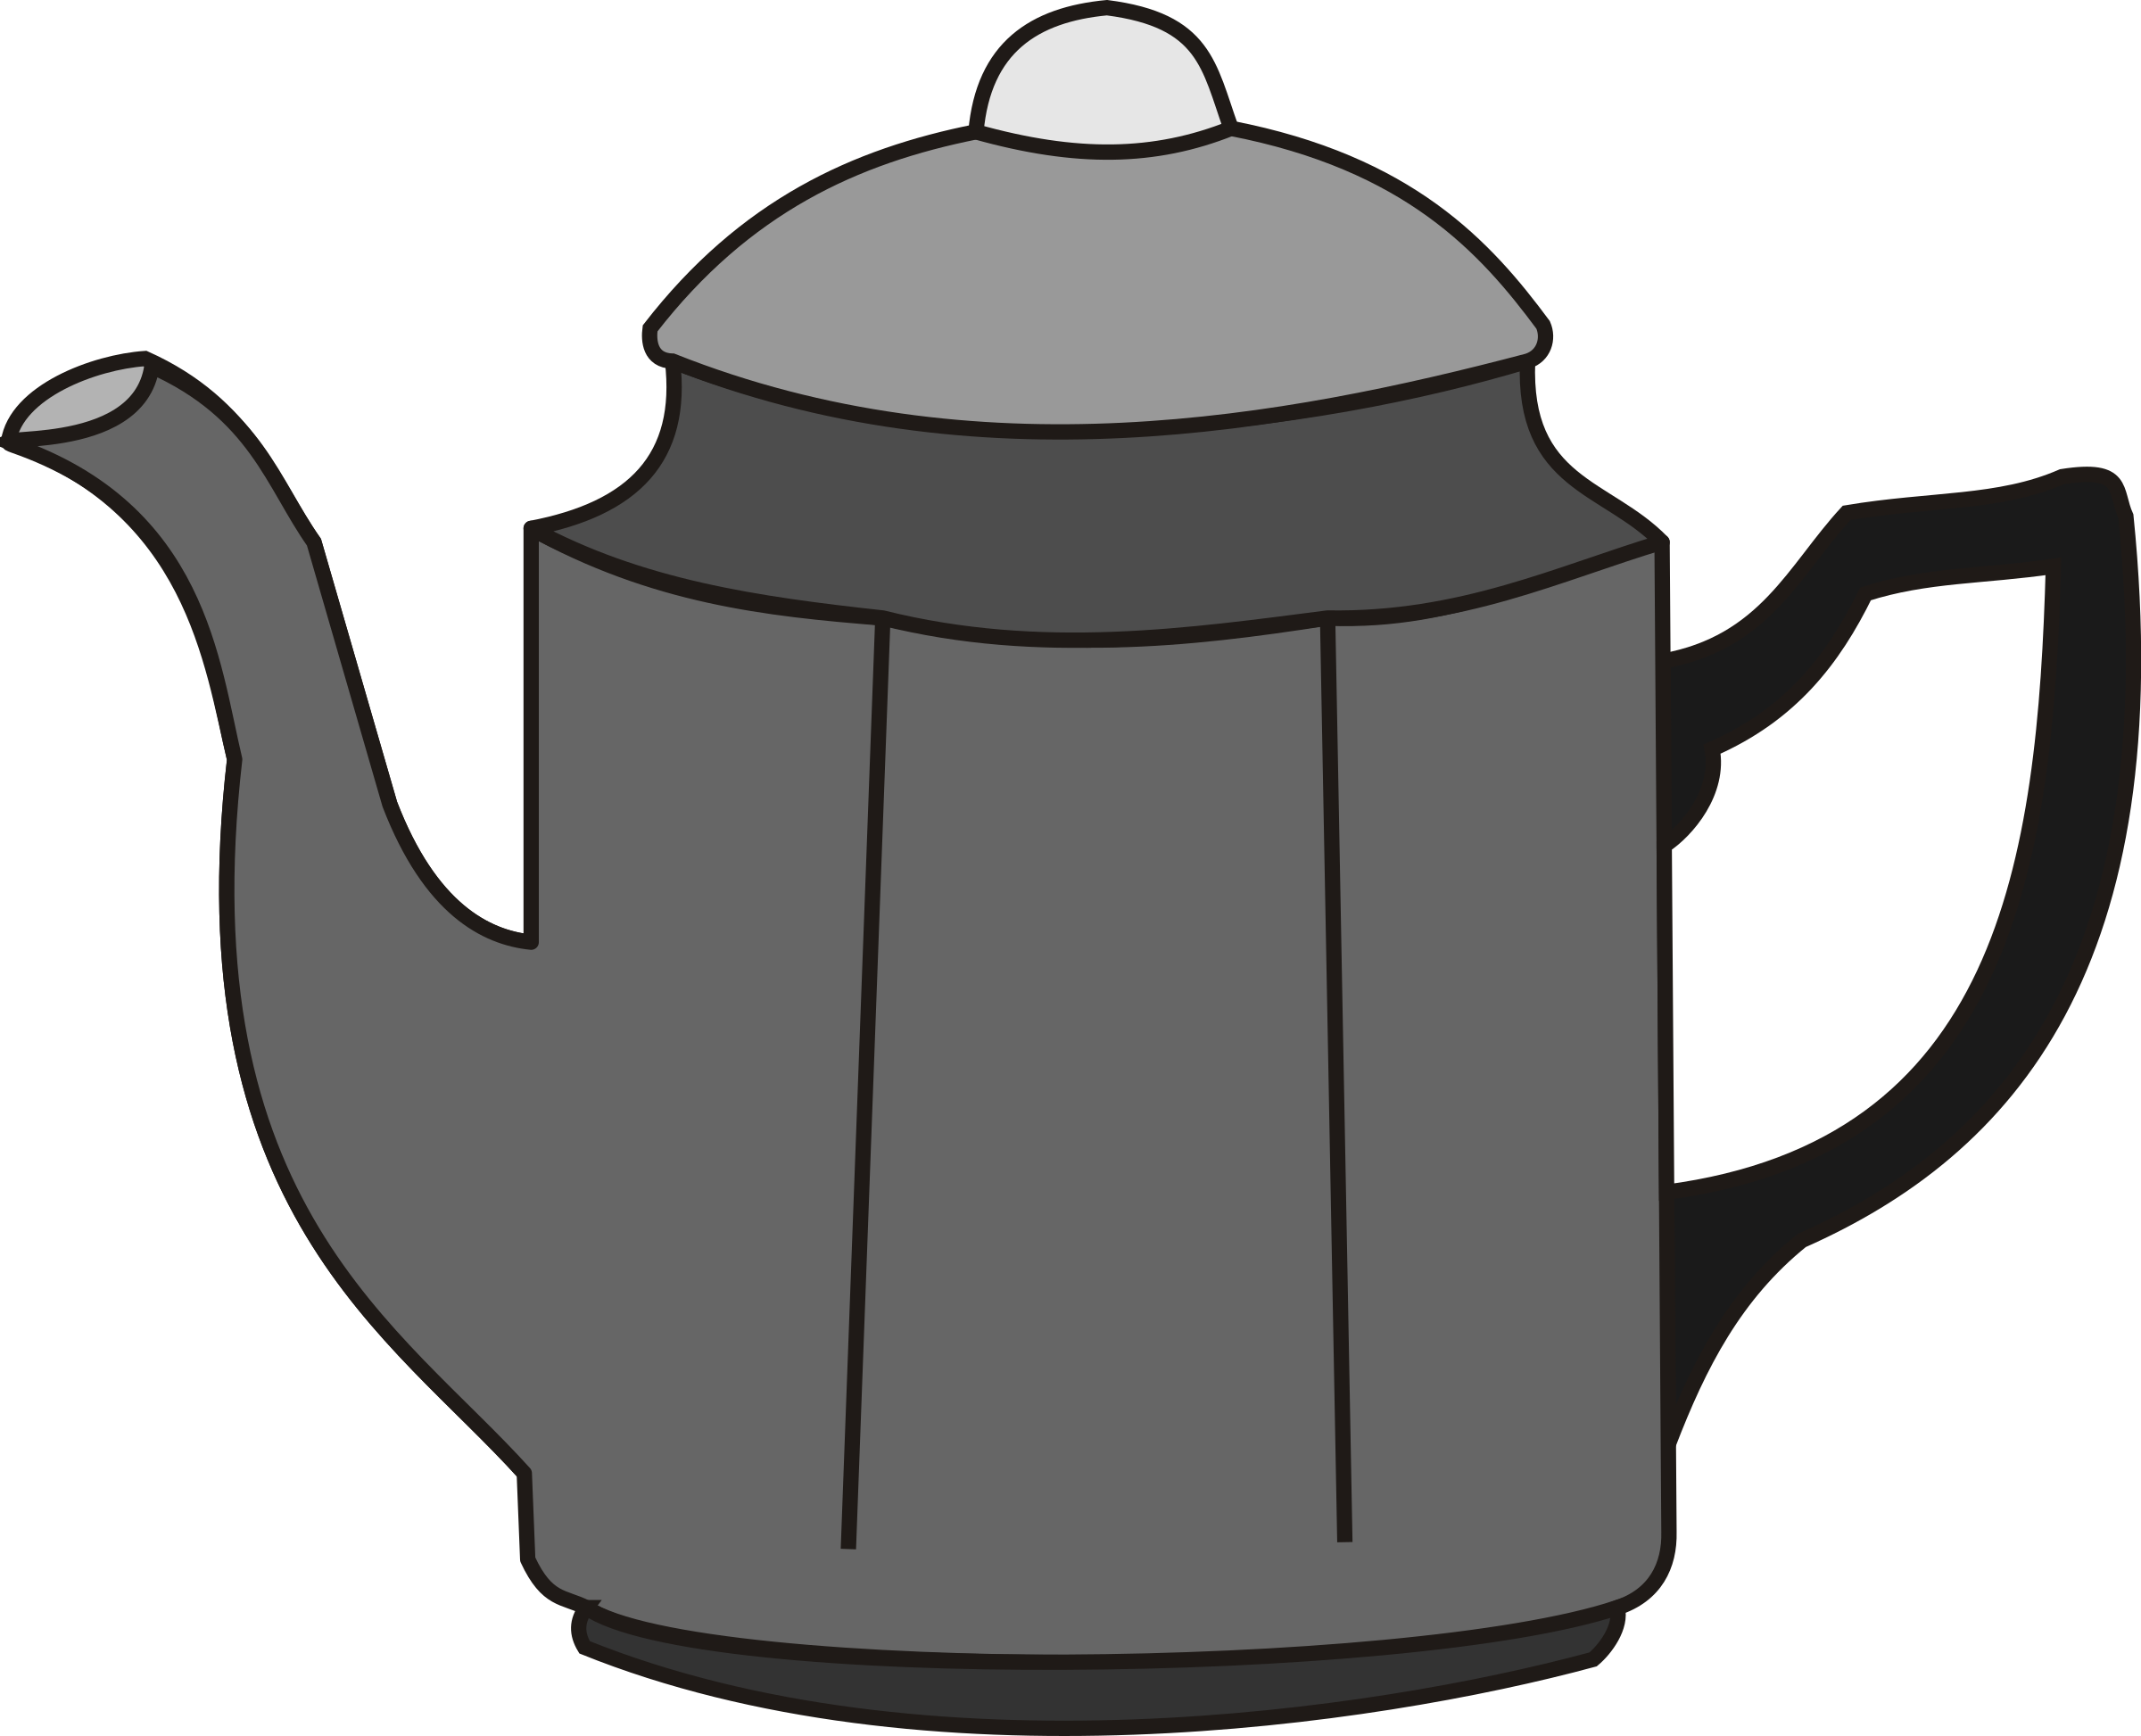 Coffee Percolator Clipart 20 Free Cliparts Download